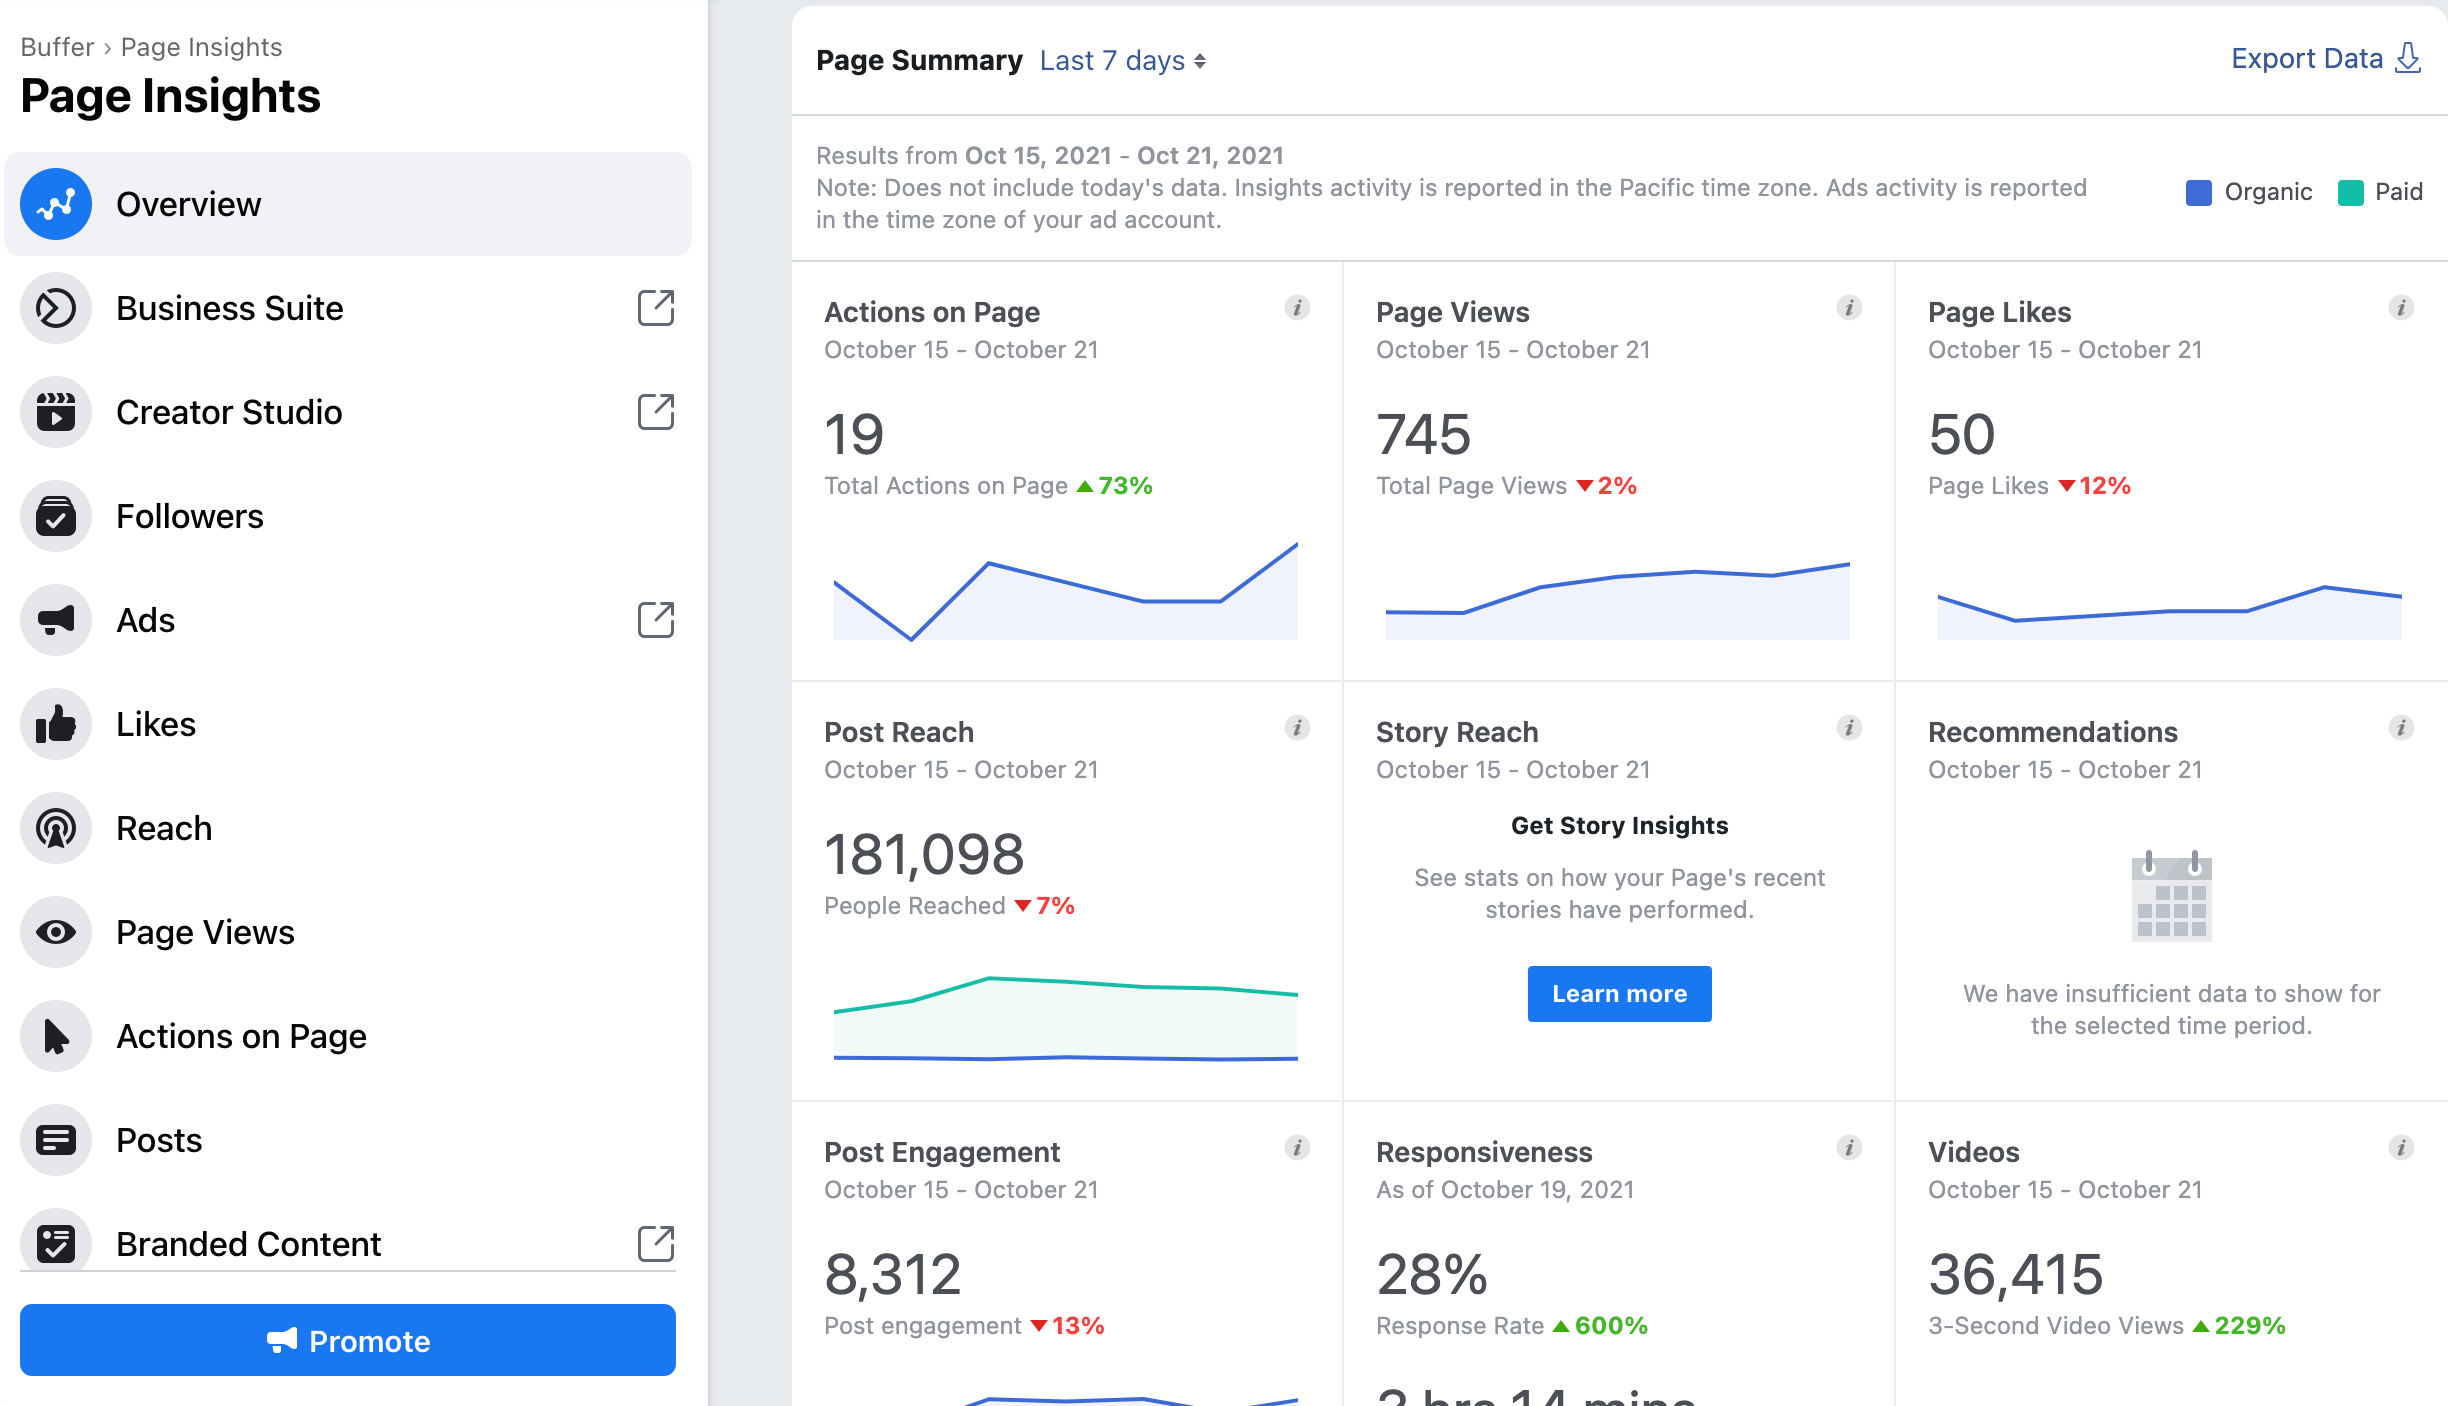 Buffer's Facebook Page Insights